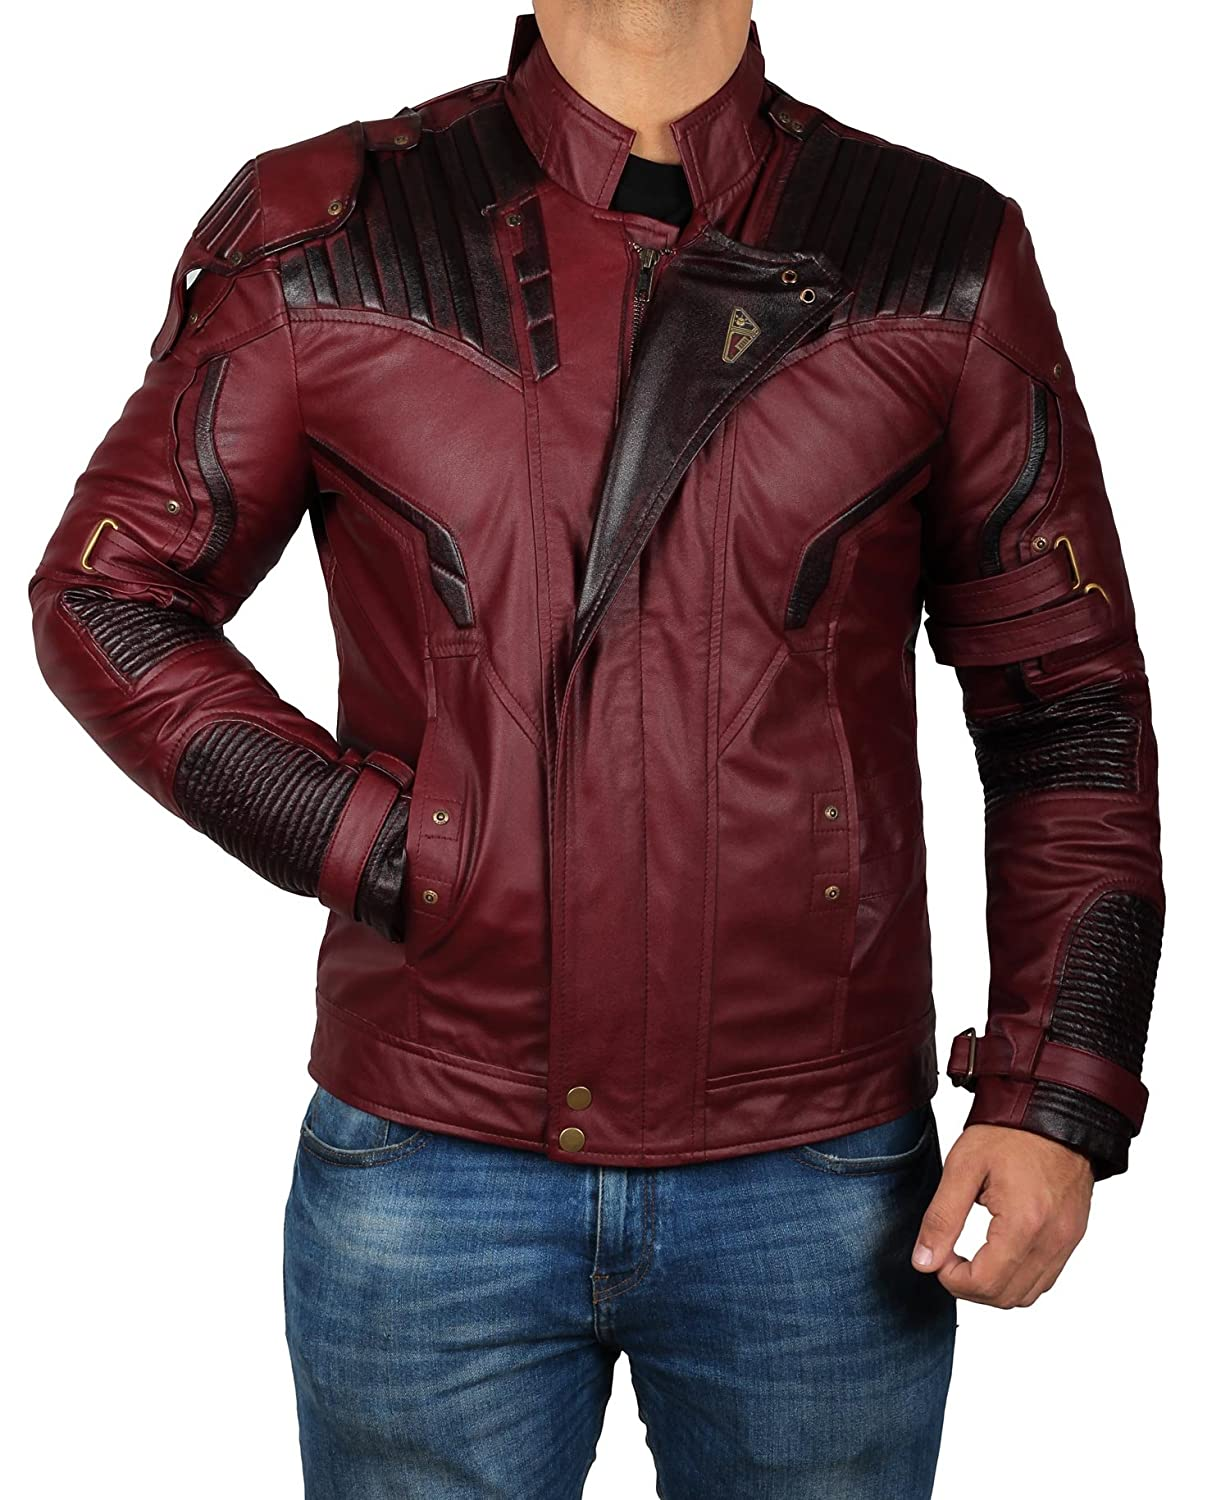 BlingSoul Maroon Leather Jacket Waxed - Halloween Costume Jacket for Mens BSO-Star-Lord-GOG-XS